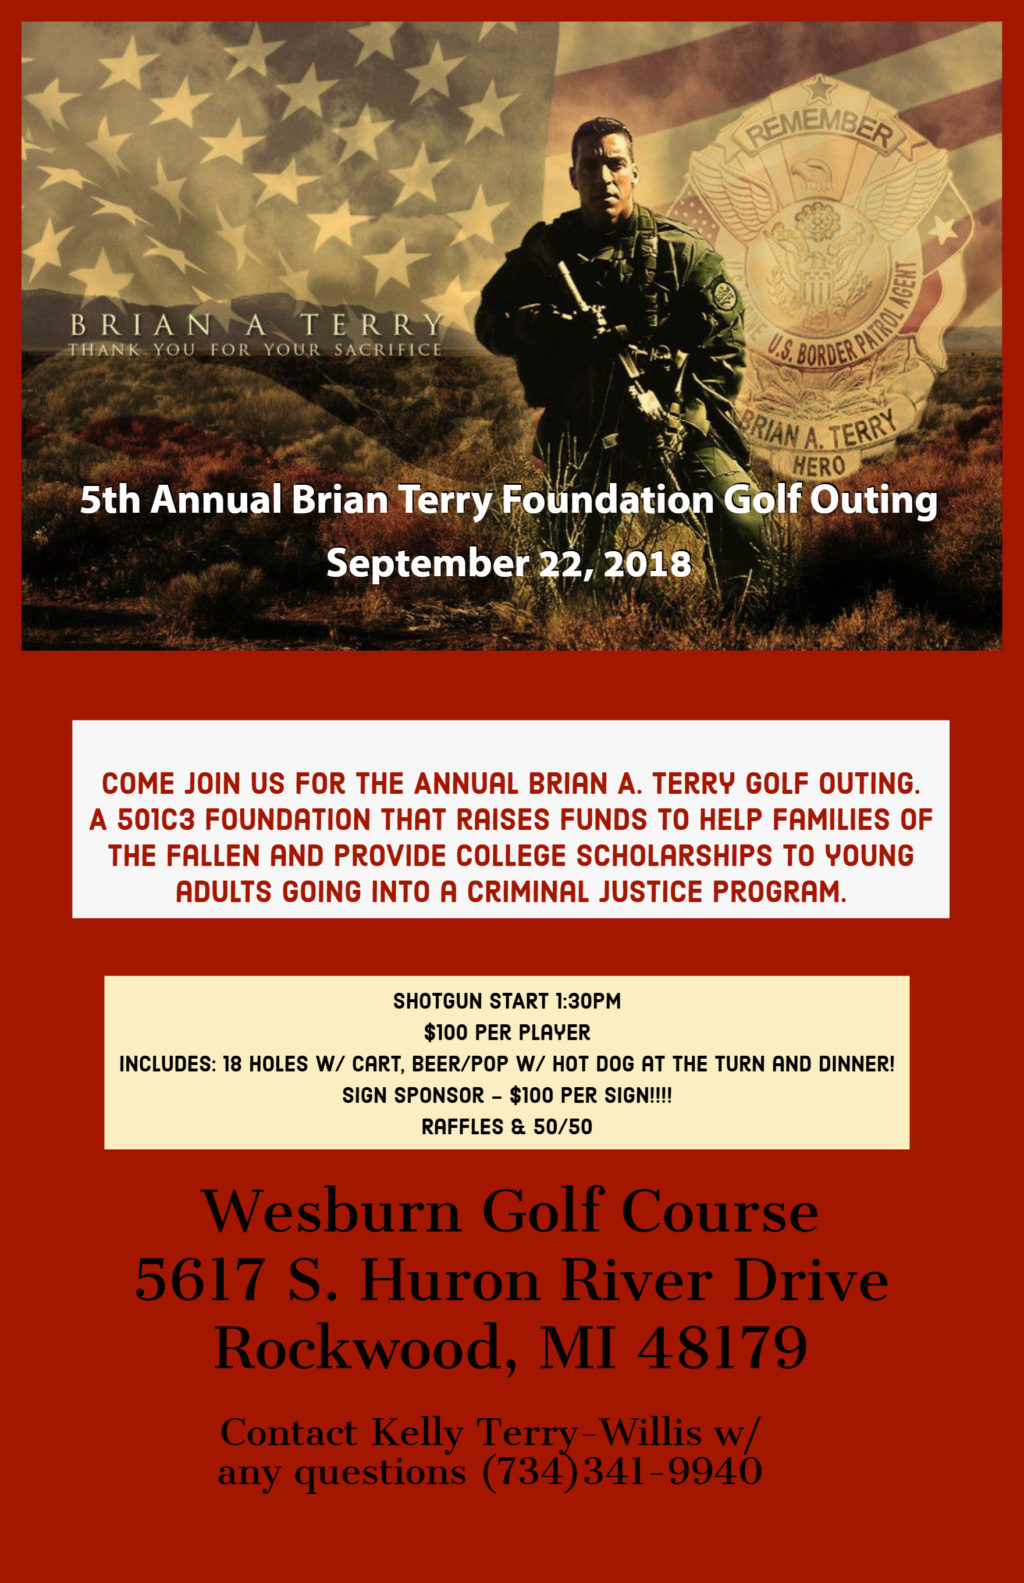 5th Annual Brian Terry Foundation Golf Outing